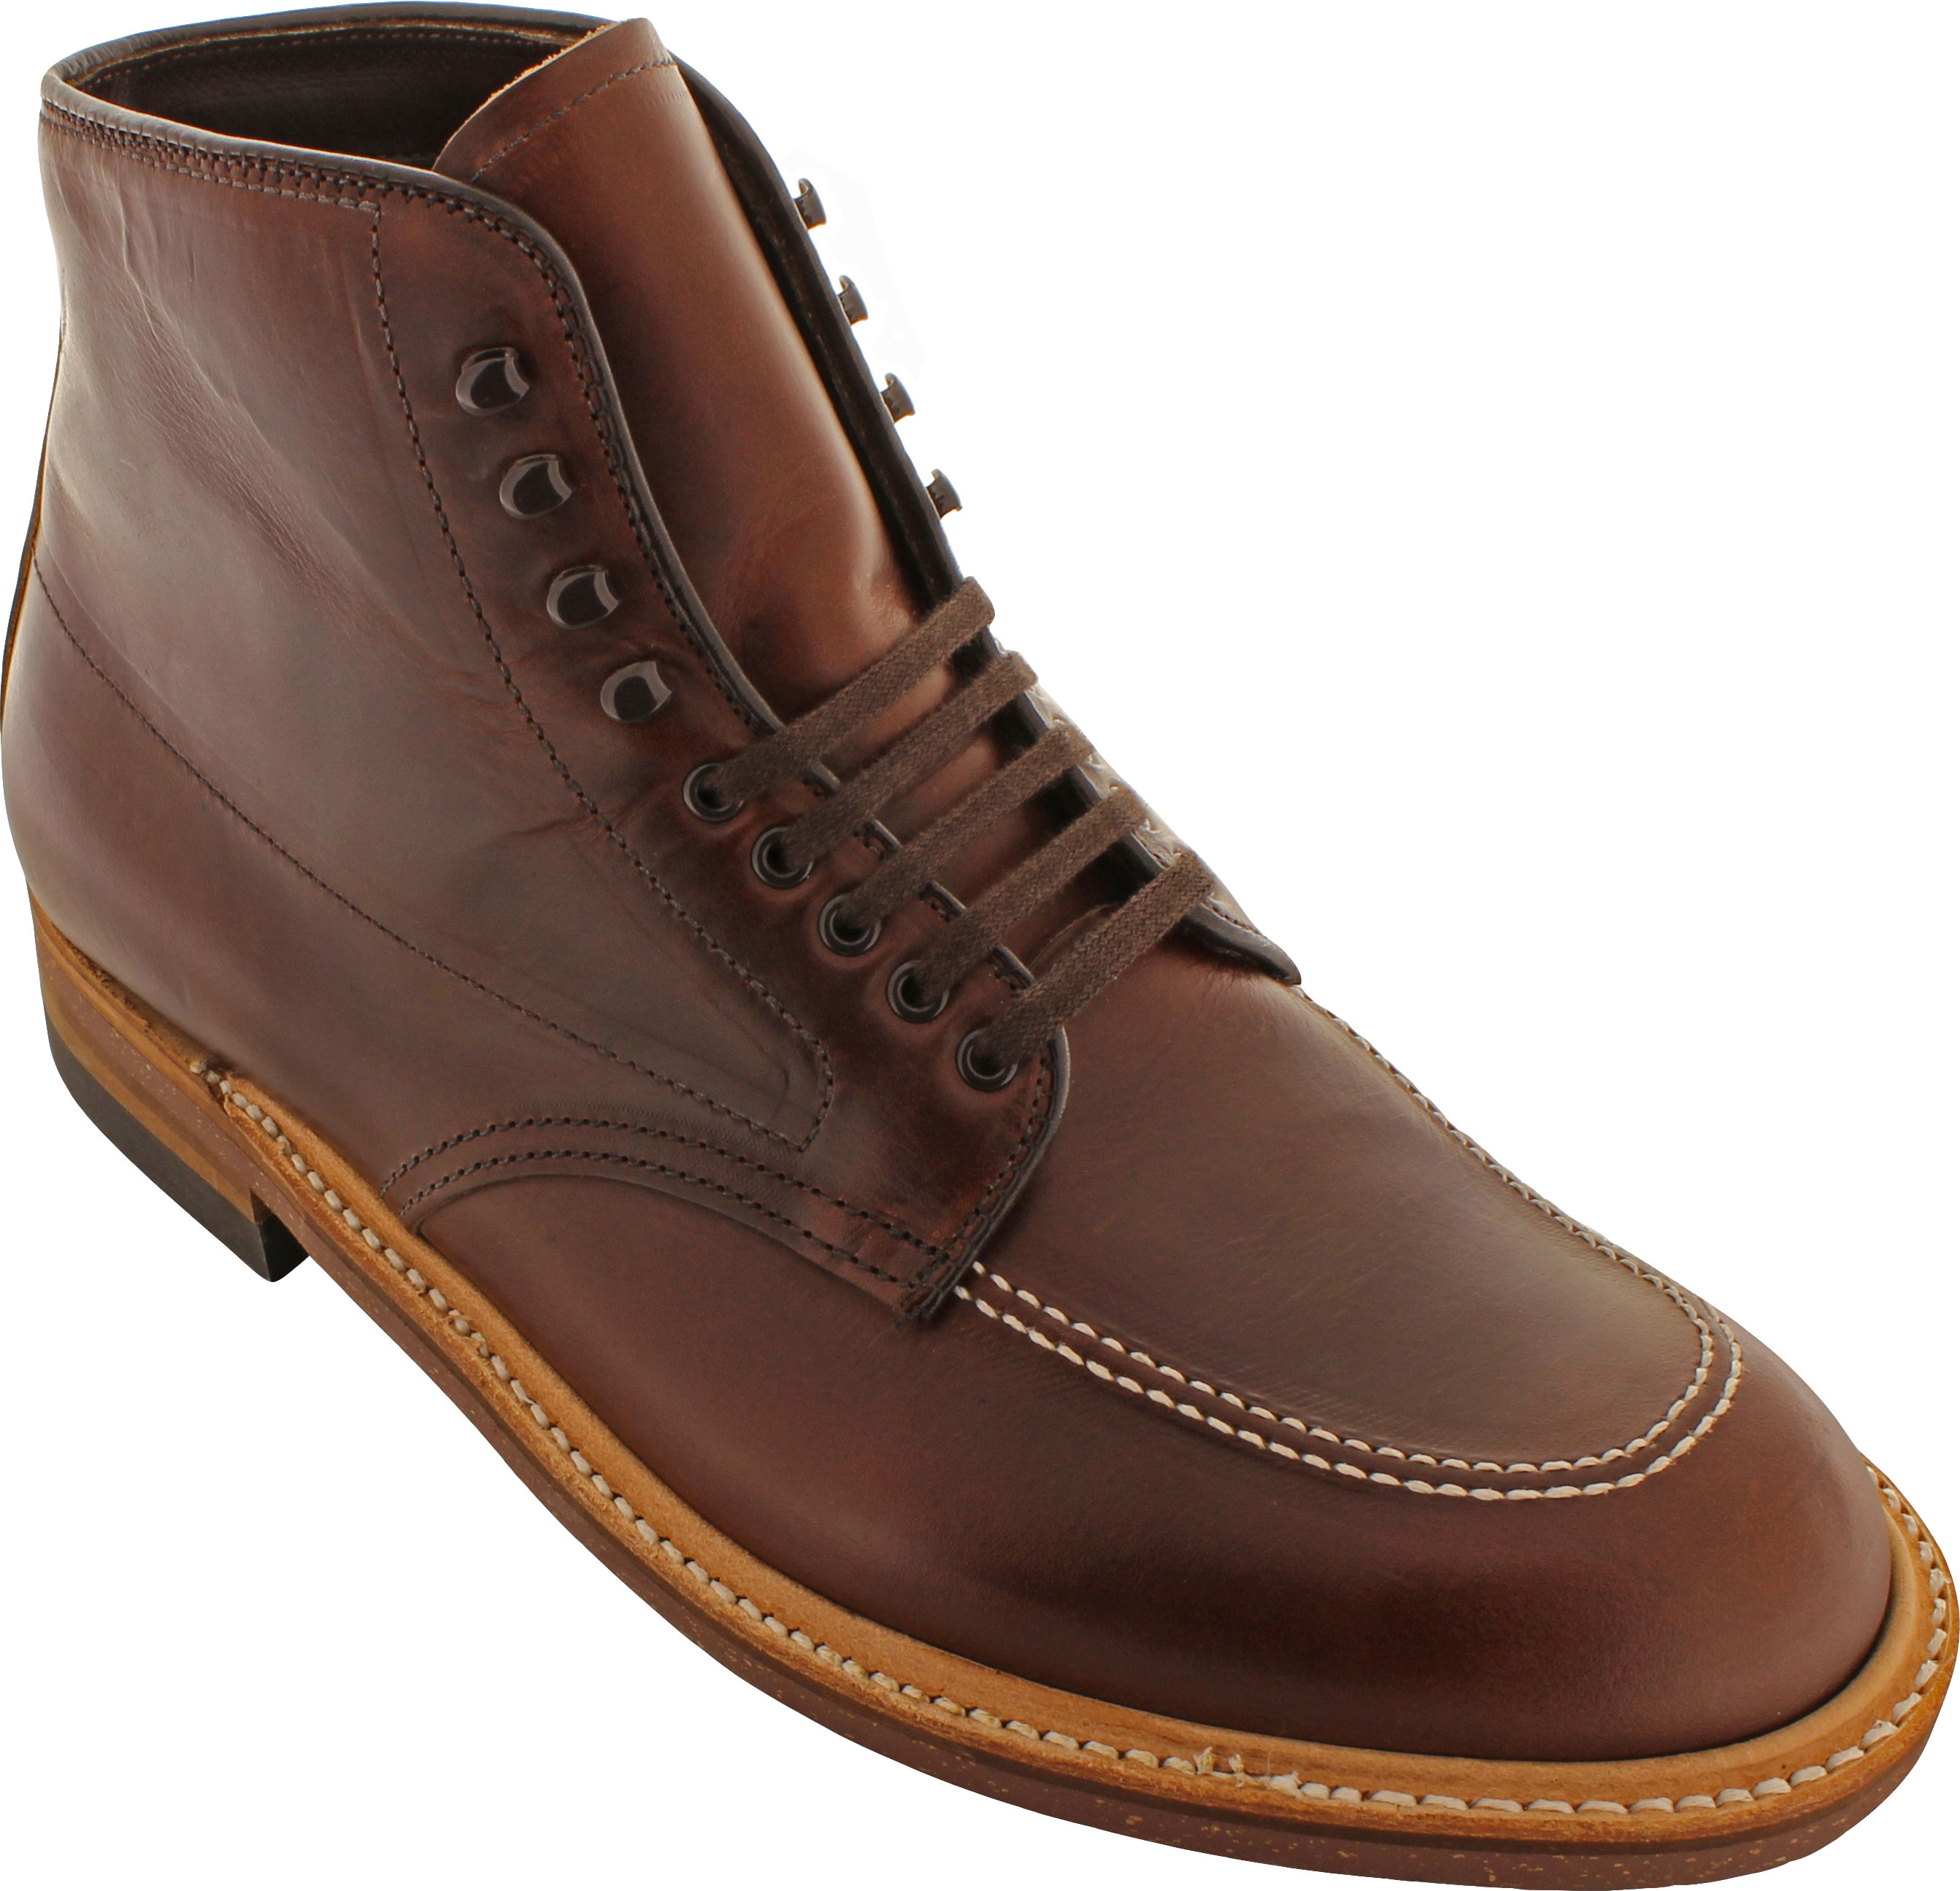 bc9167355a Alden 403 Indy Boot - Brown Chromexcel